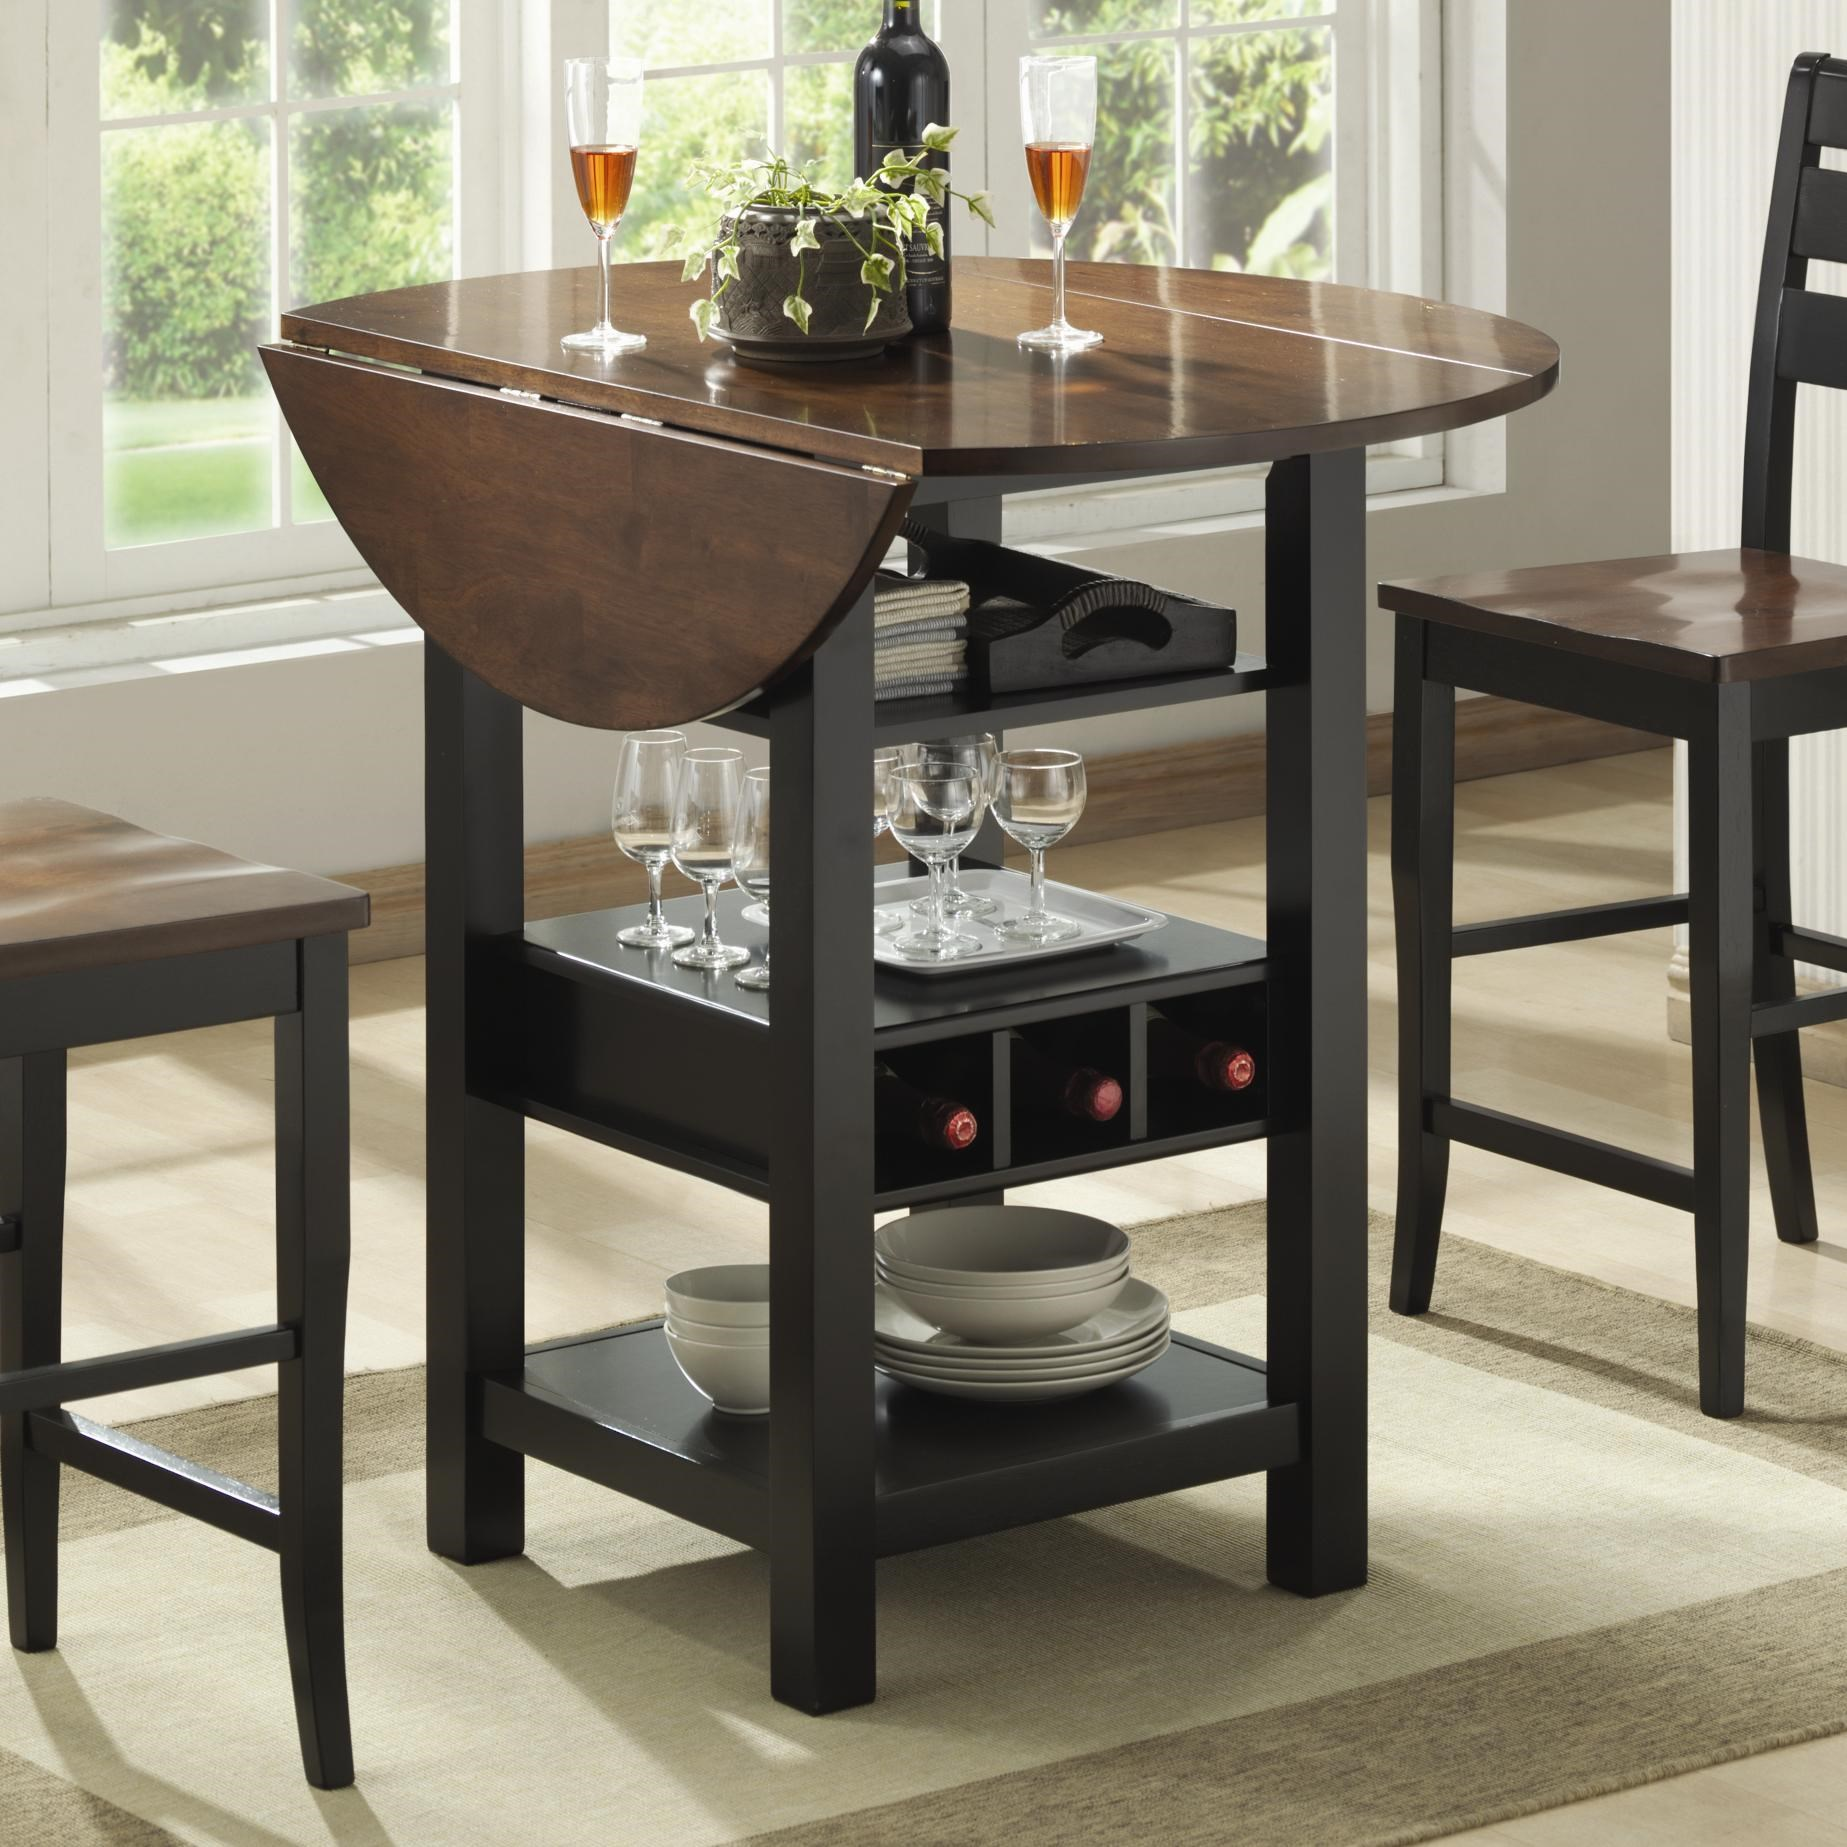 bernards ridgewood drop leaf pub table with wine rack - Wine Rack Table